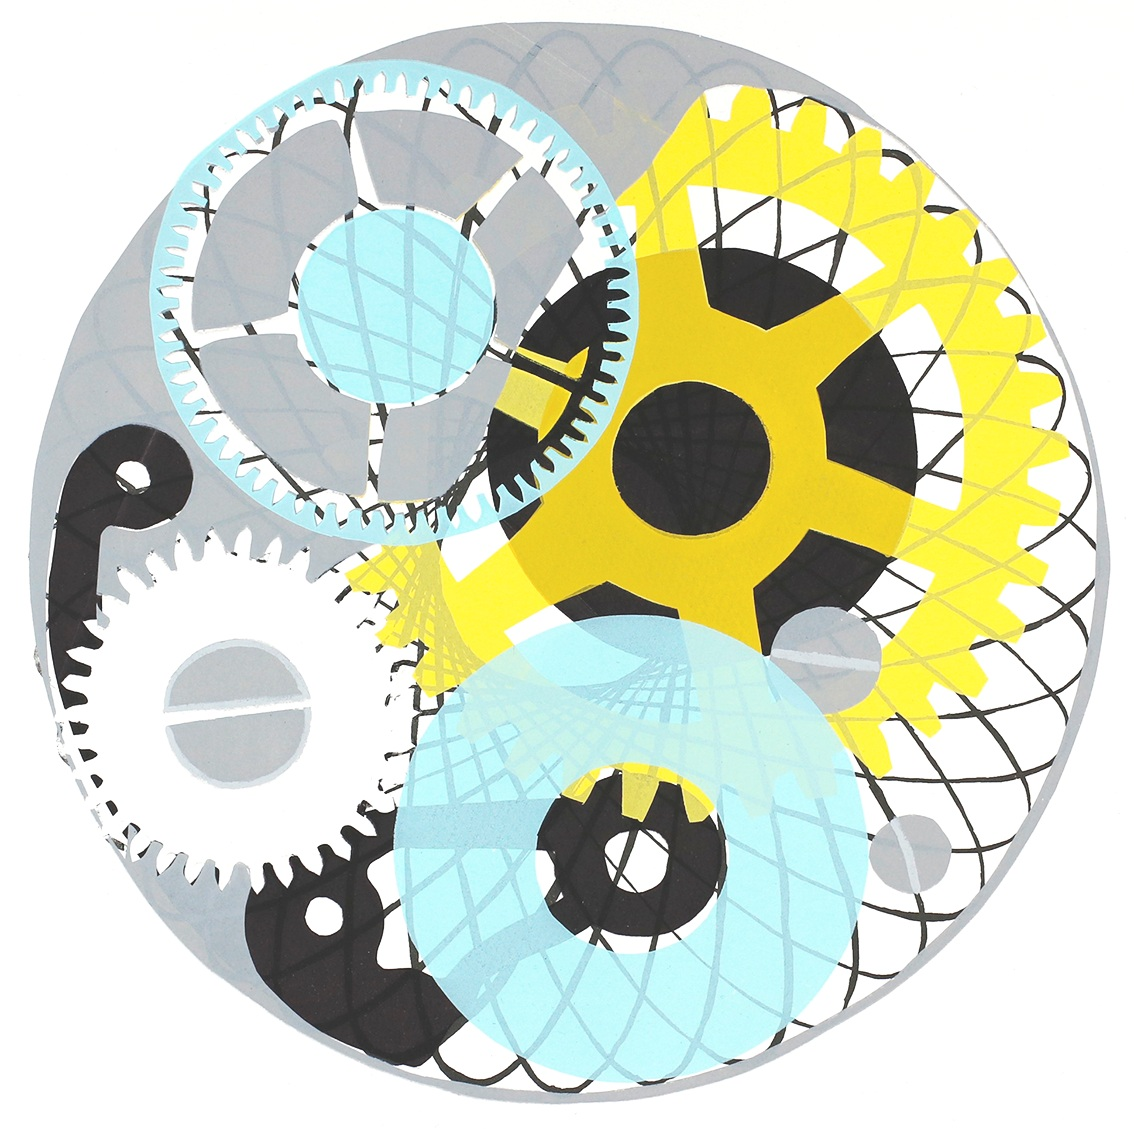 Screen-prints - Spirals, cogs and gears